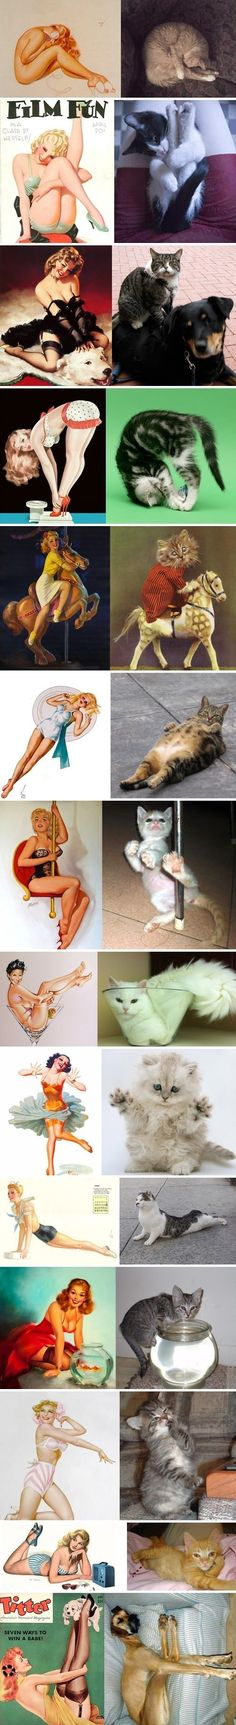 Cats and Pinup models...    L to the O to the L!